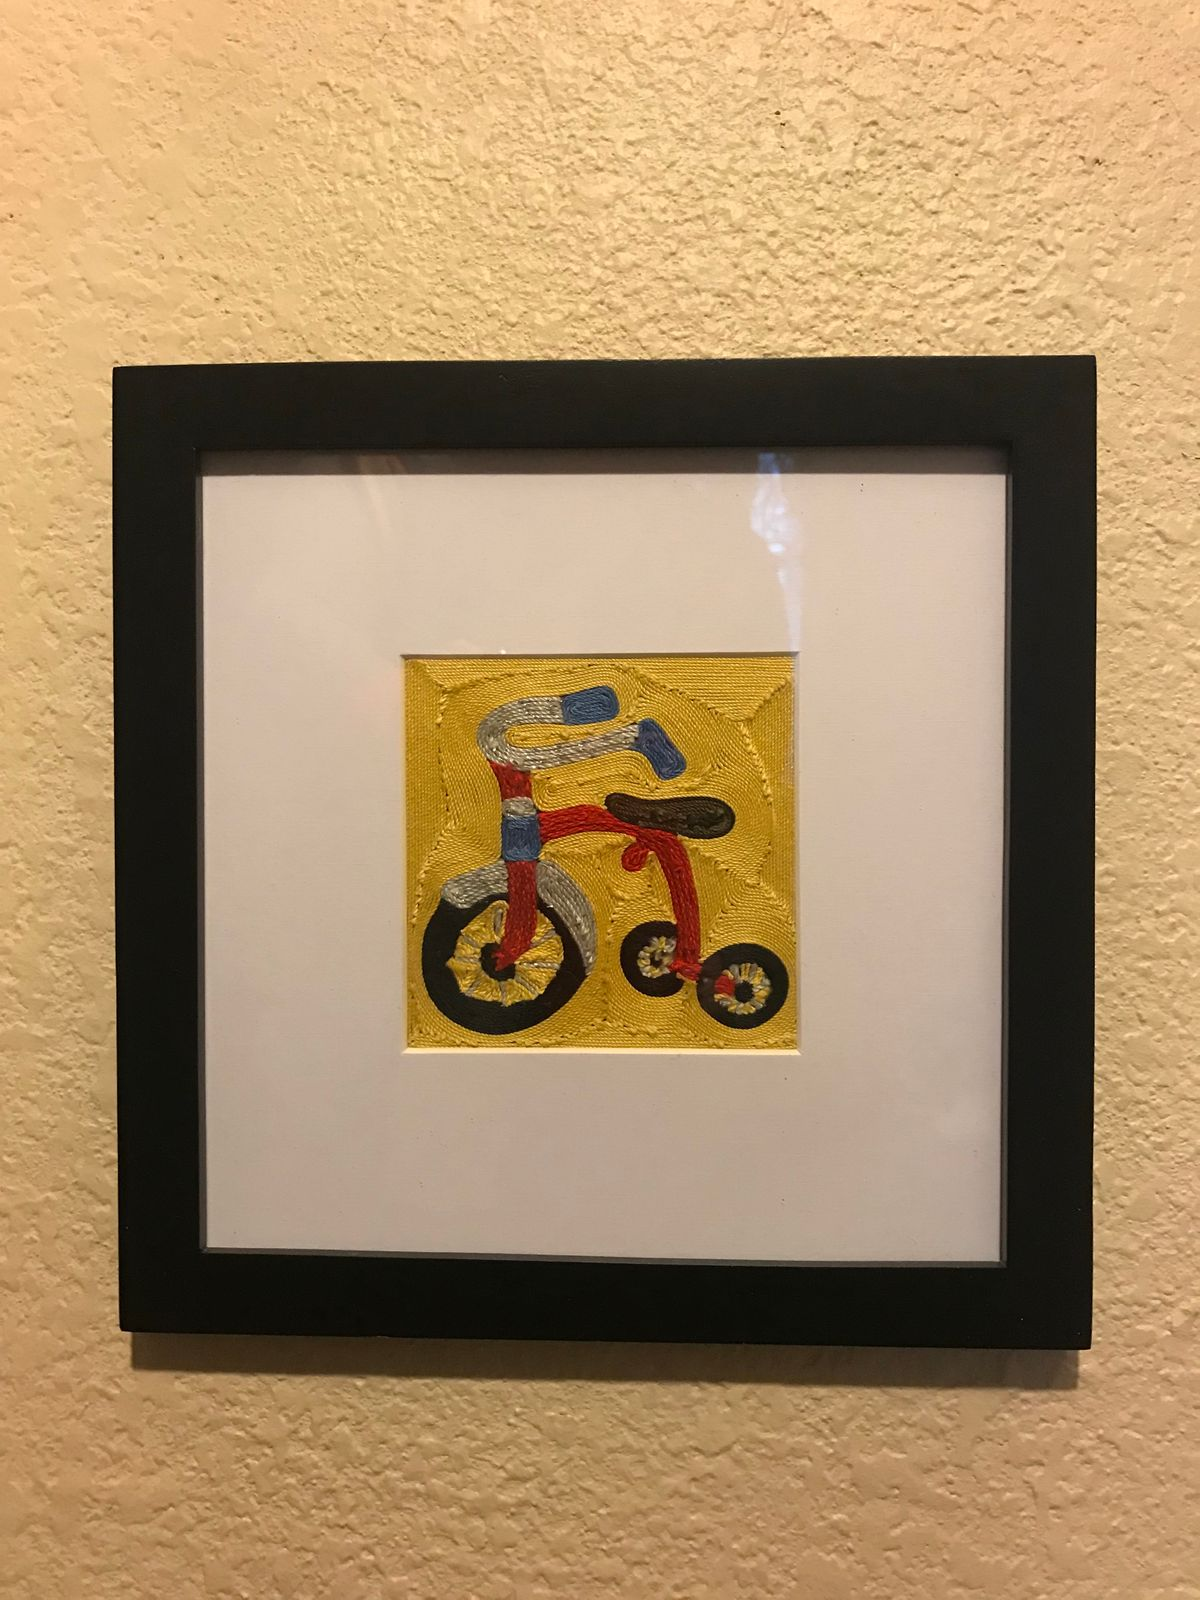 2a_April_Sullivan_Tricycle_Austin Art_Austin Artist_Austin Gifts.jpg